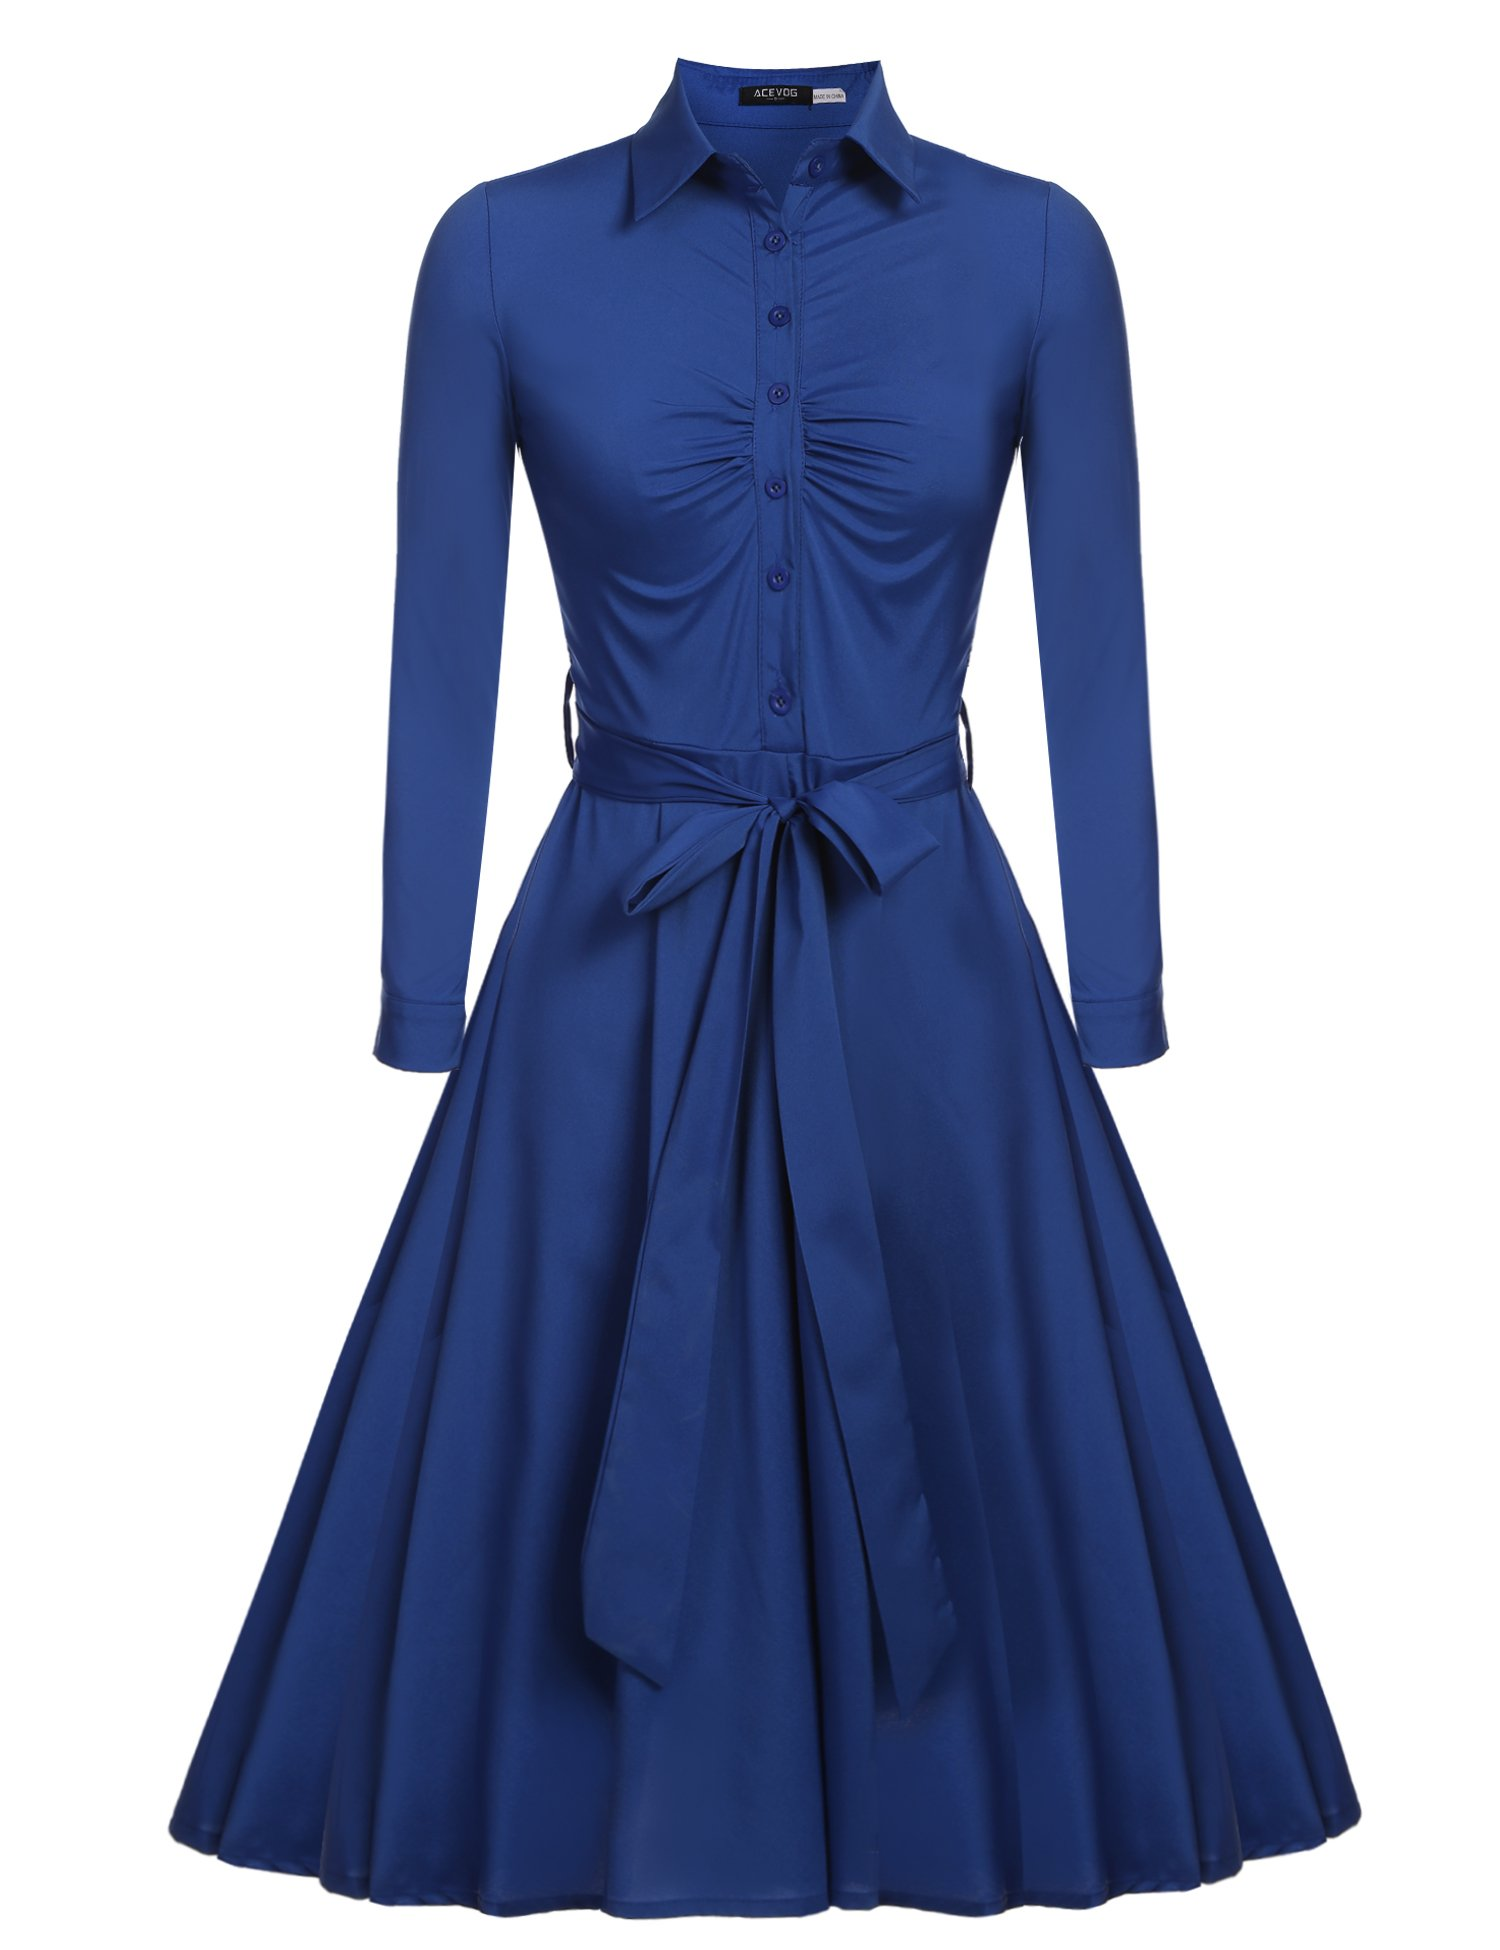 Beyove Women's Solid Retro Vintage Style Cocktail Party Swing Dress Blue S